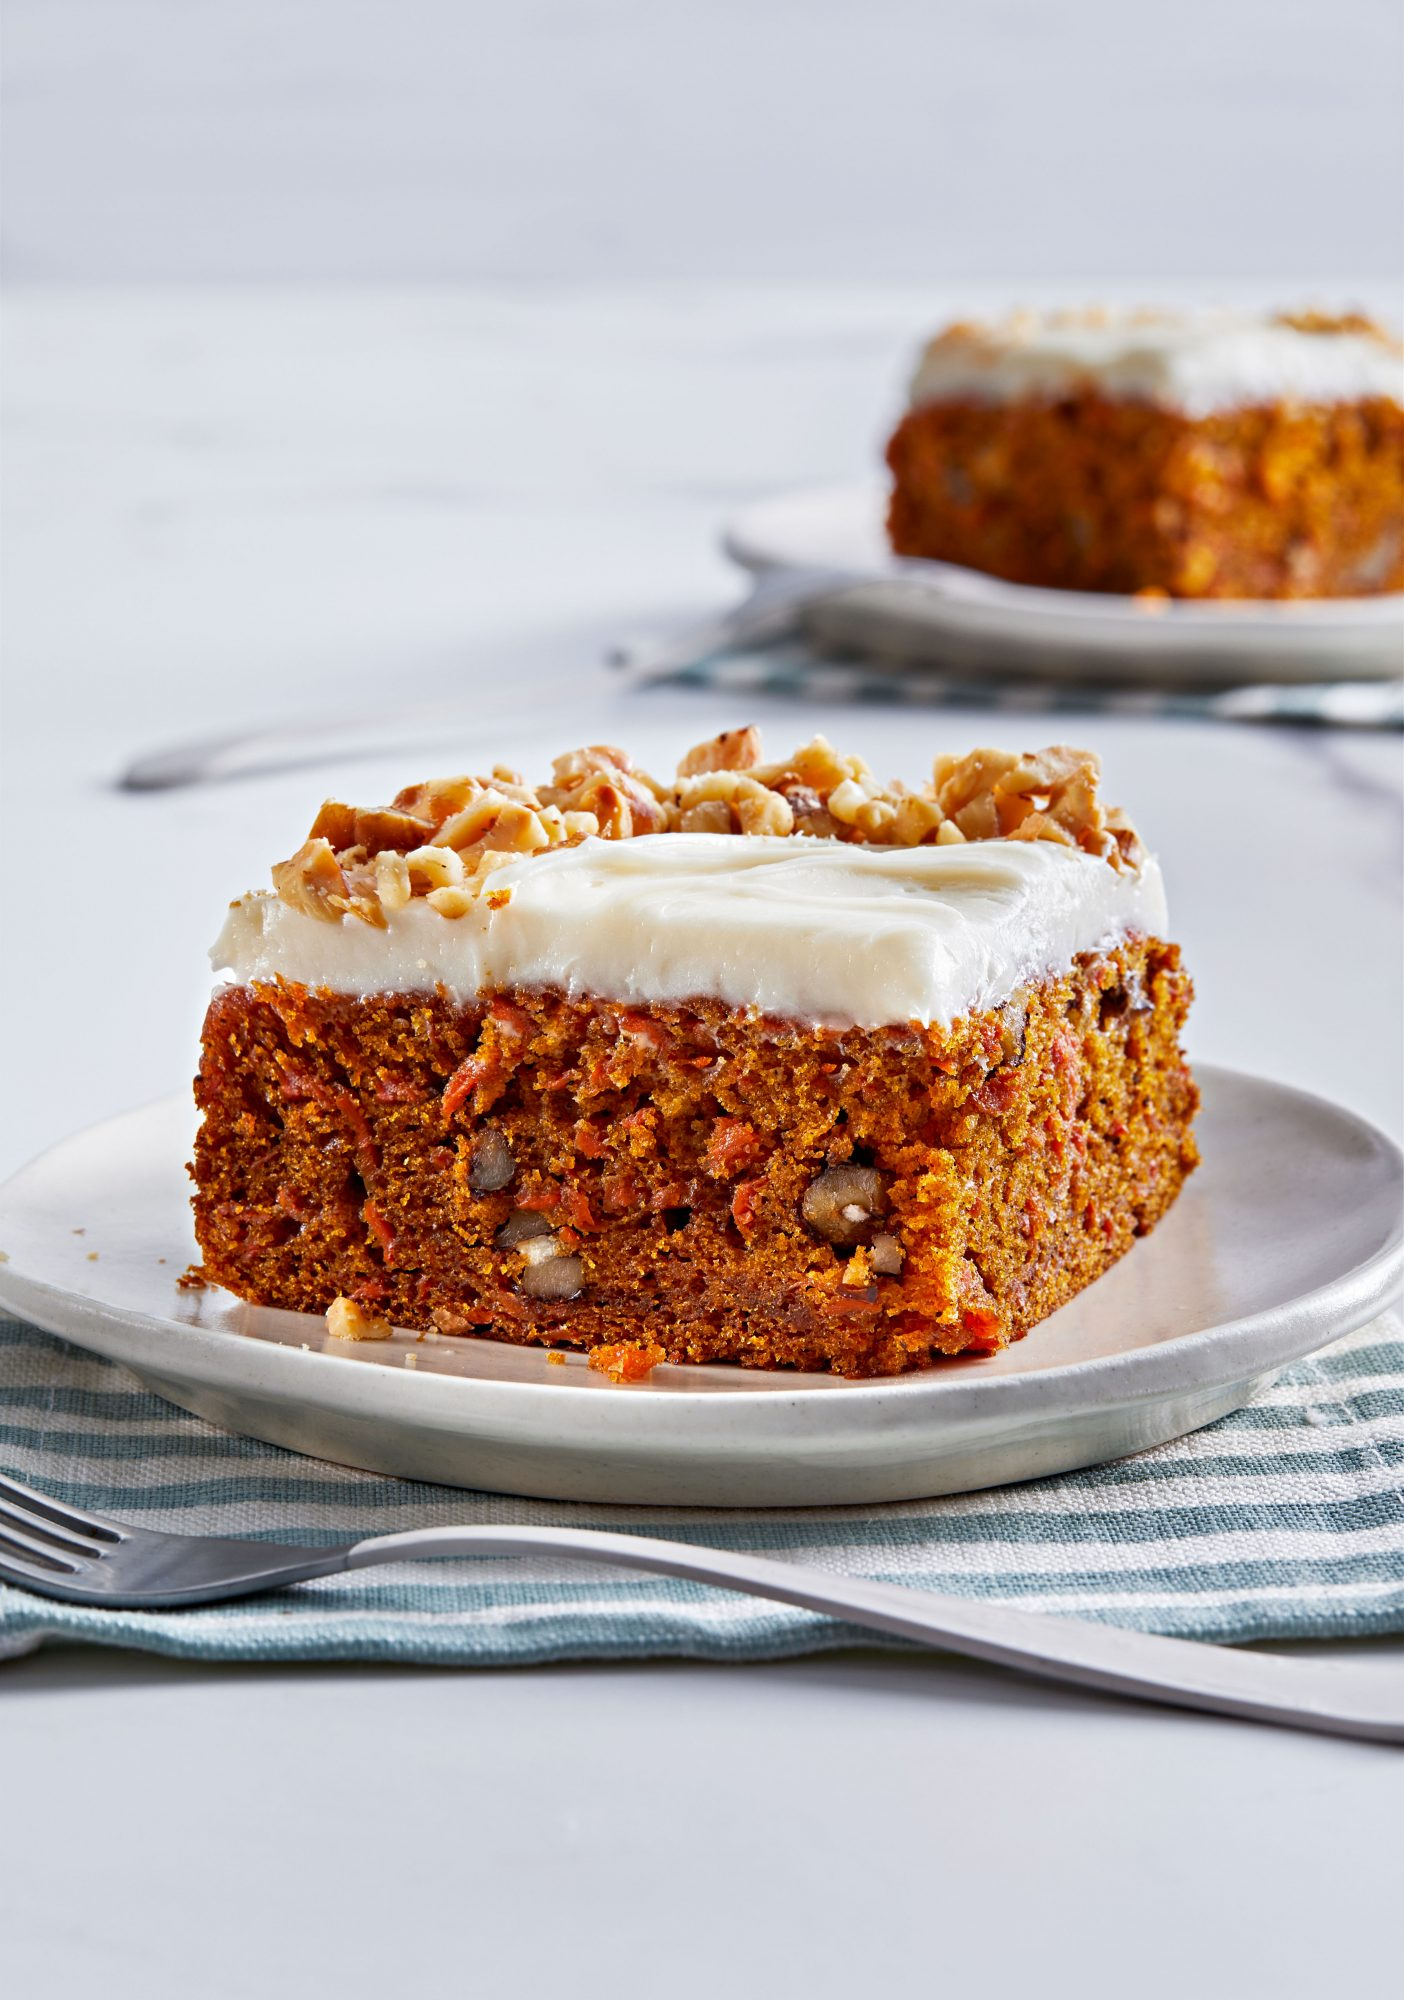 Carrot-Walnut Snack Cake with Cream Cheese Frosting